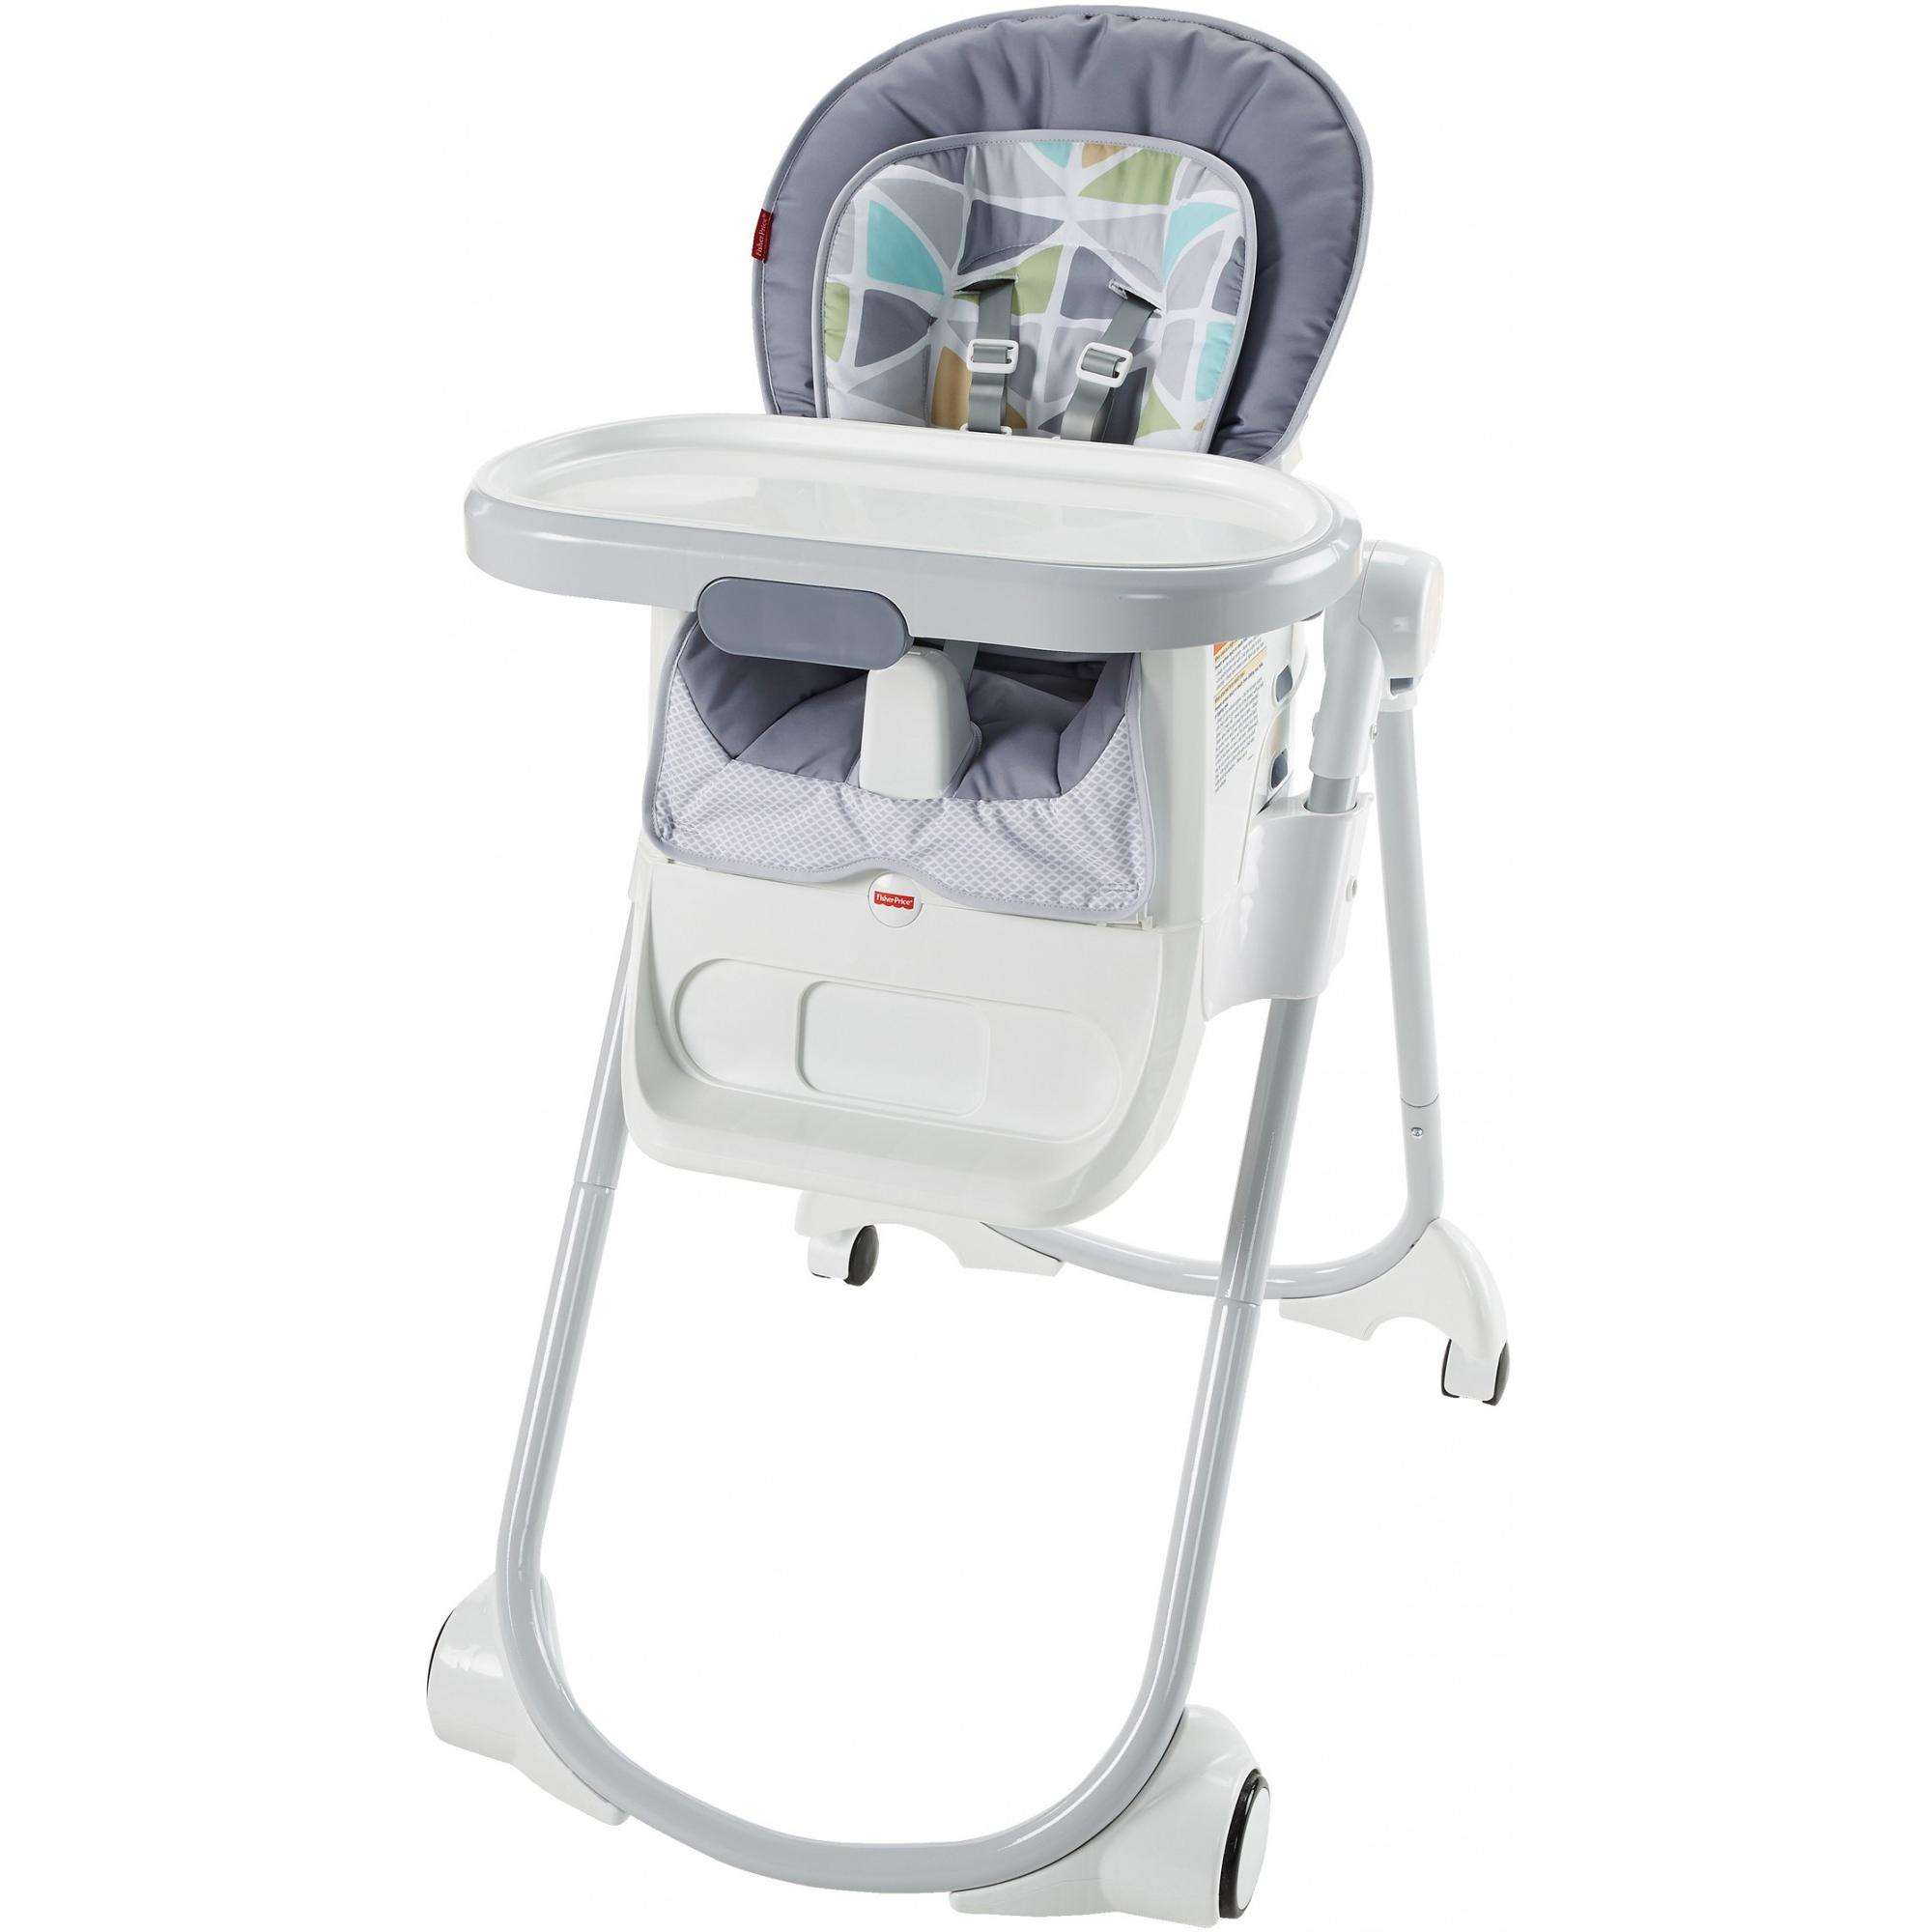 Fisher Price 4-in-1 Total Clean High Chair by Fisher-Price